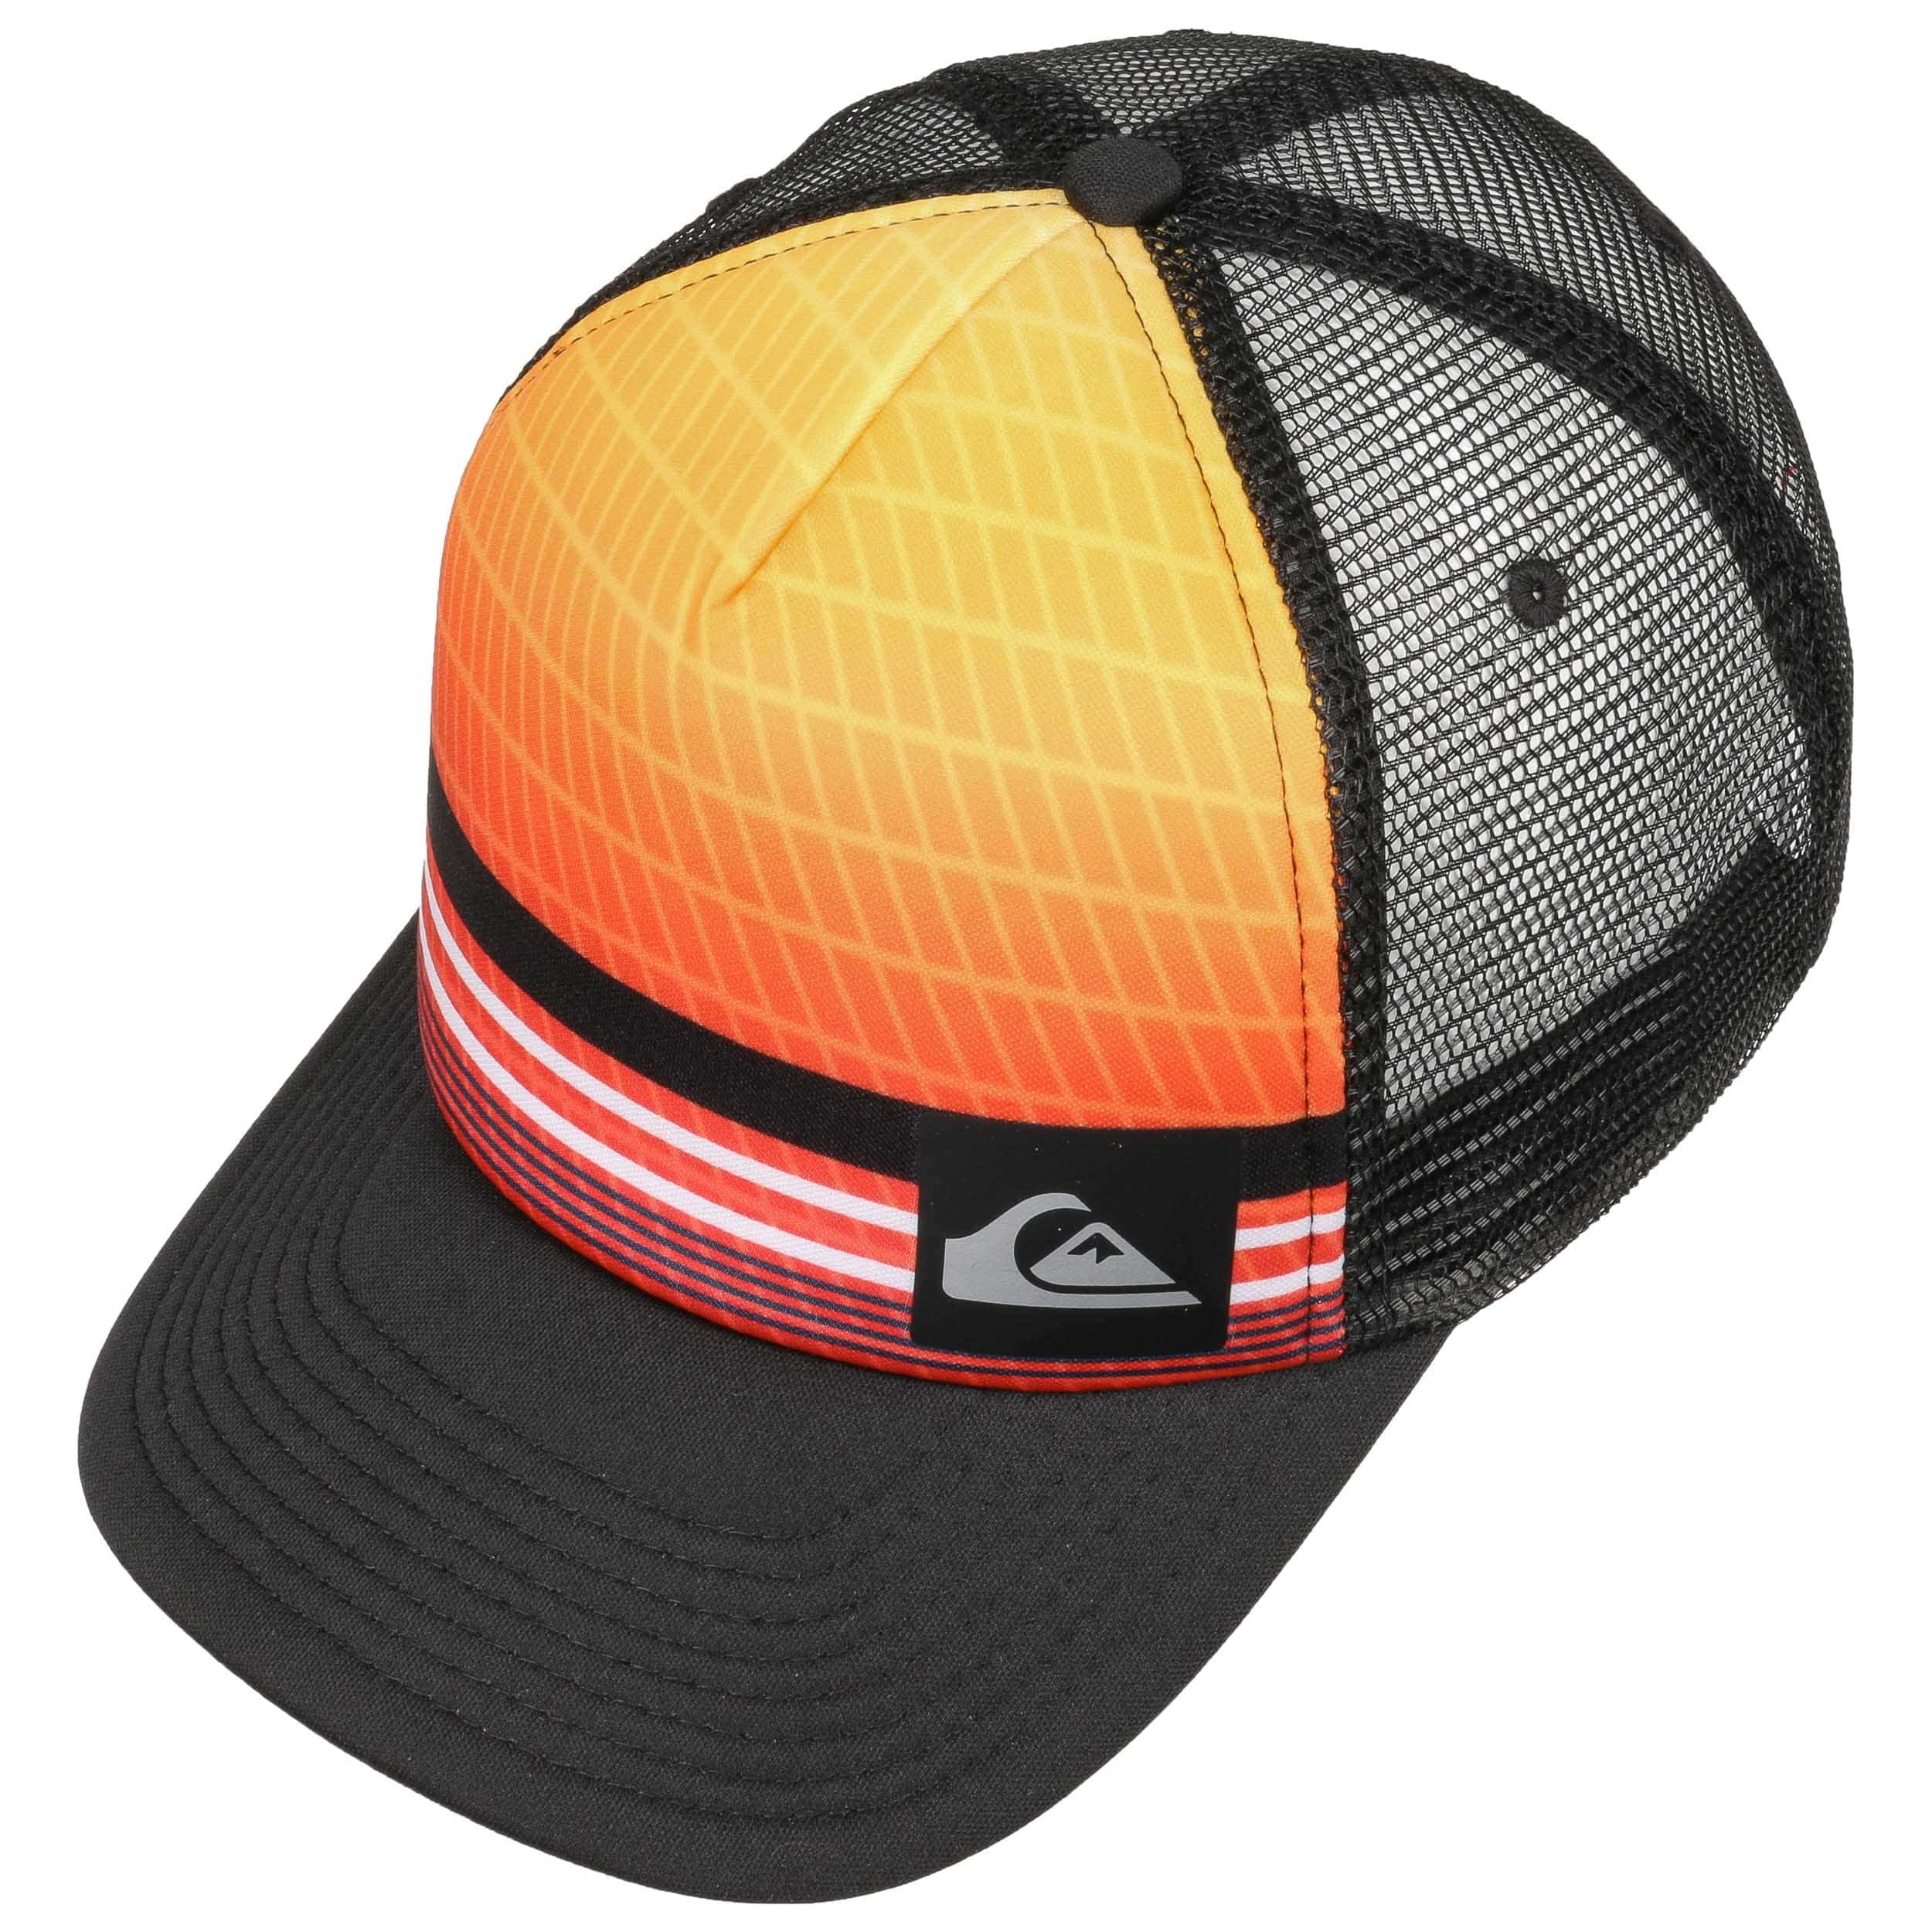 ... Foamnation Youth Trucker Cap by Quiksilver - orange 1 ... ea3476ef7e8